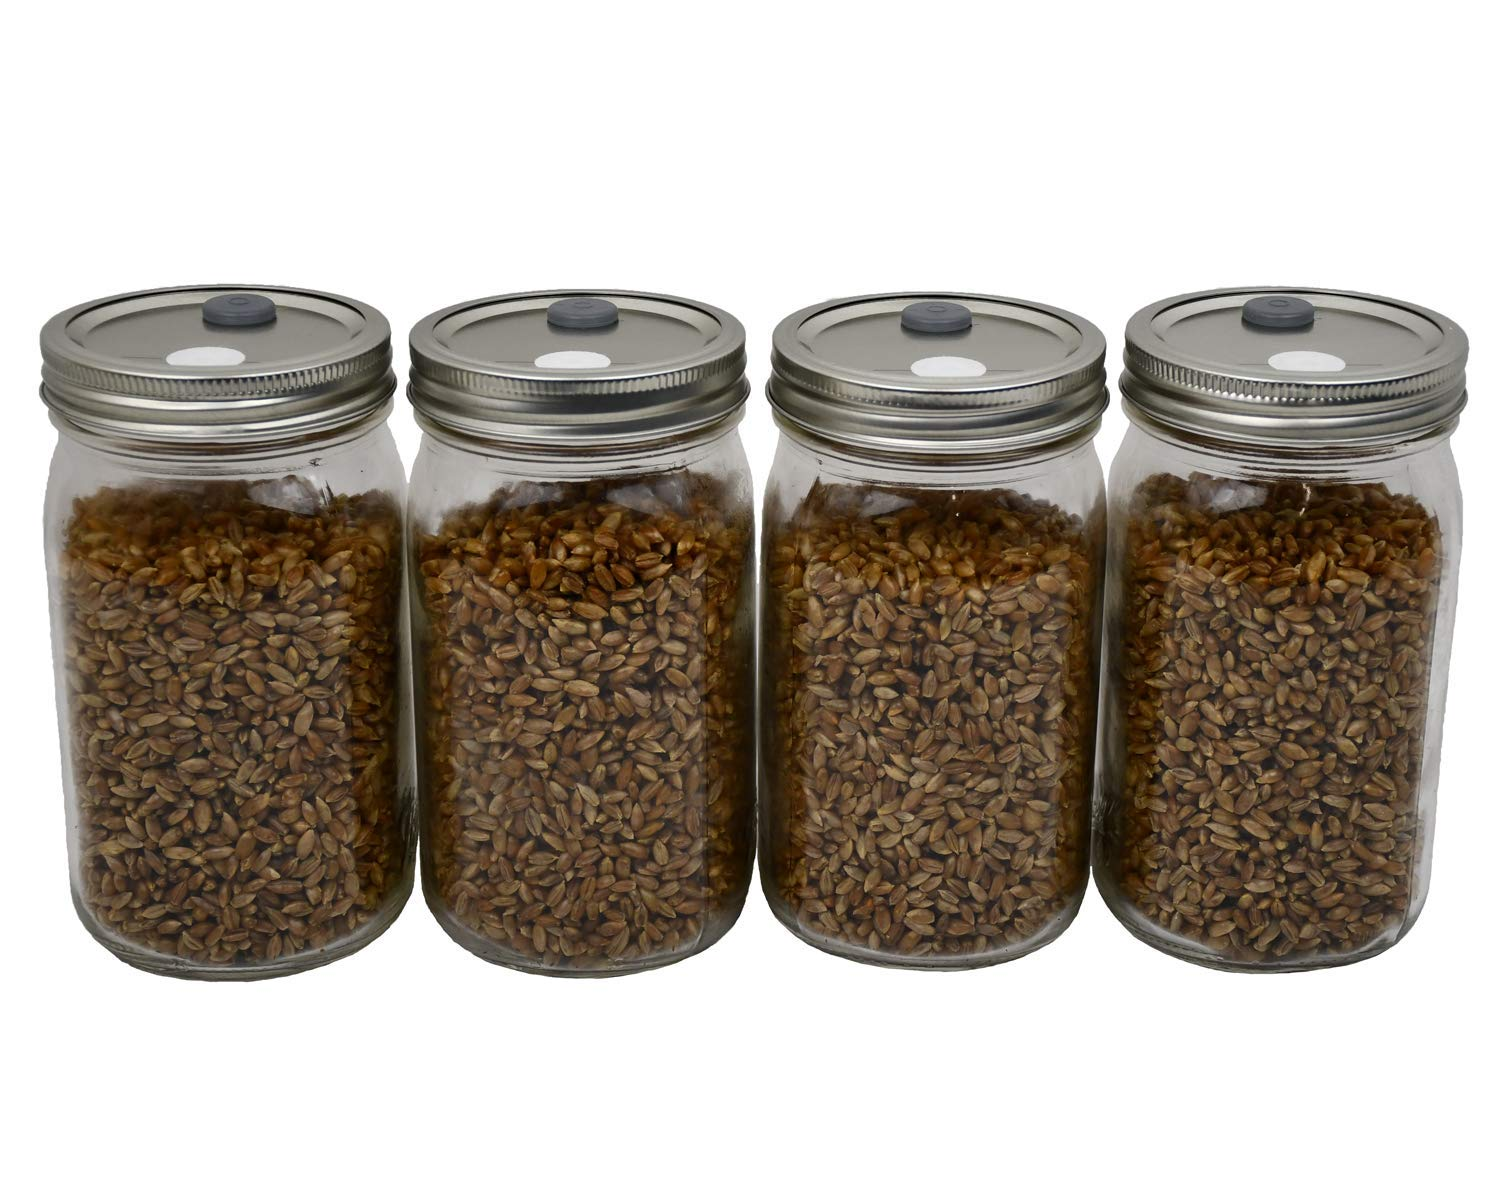 Sterilized Rye Berry Mushroom Substrate in Injectable Jars by Out-Grow by Out Grow (Image #1)